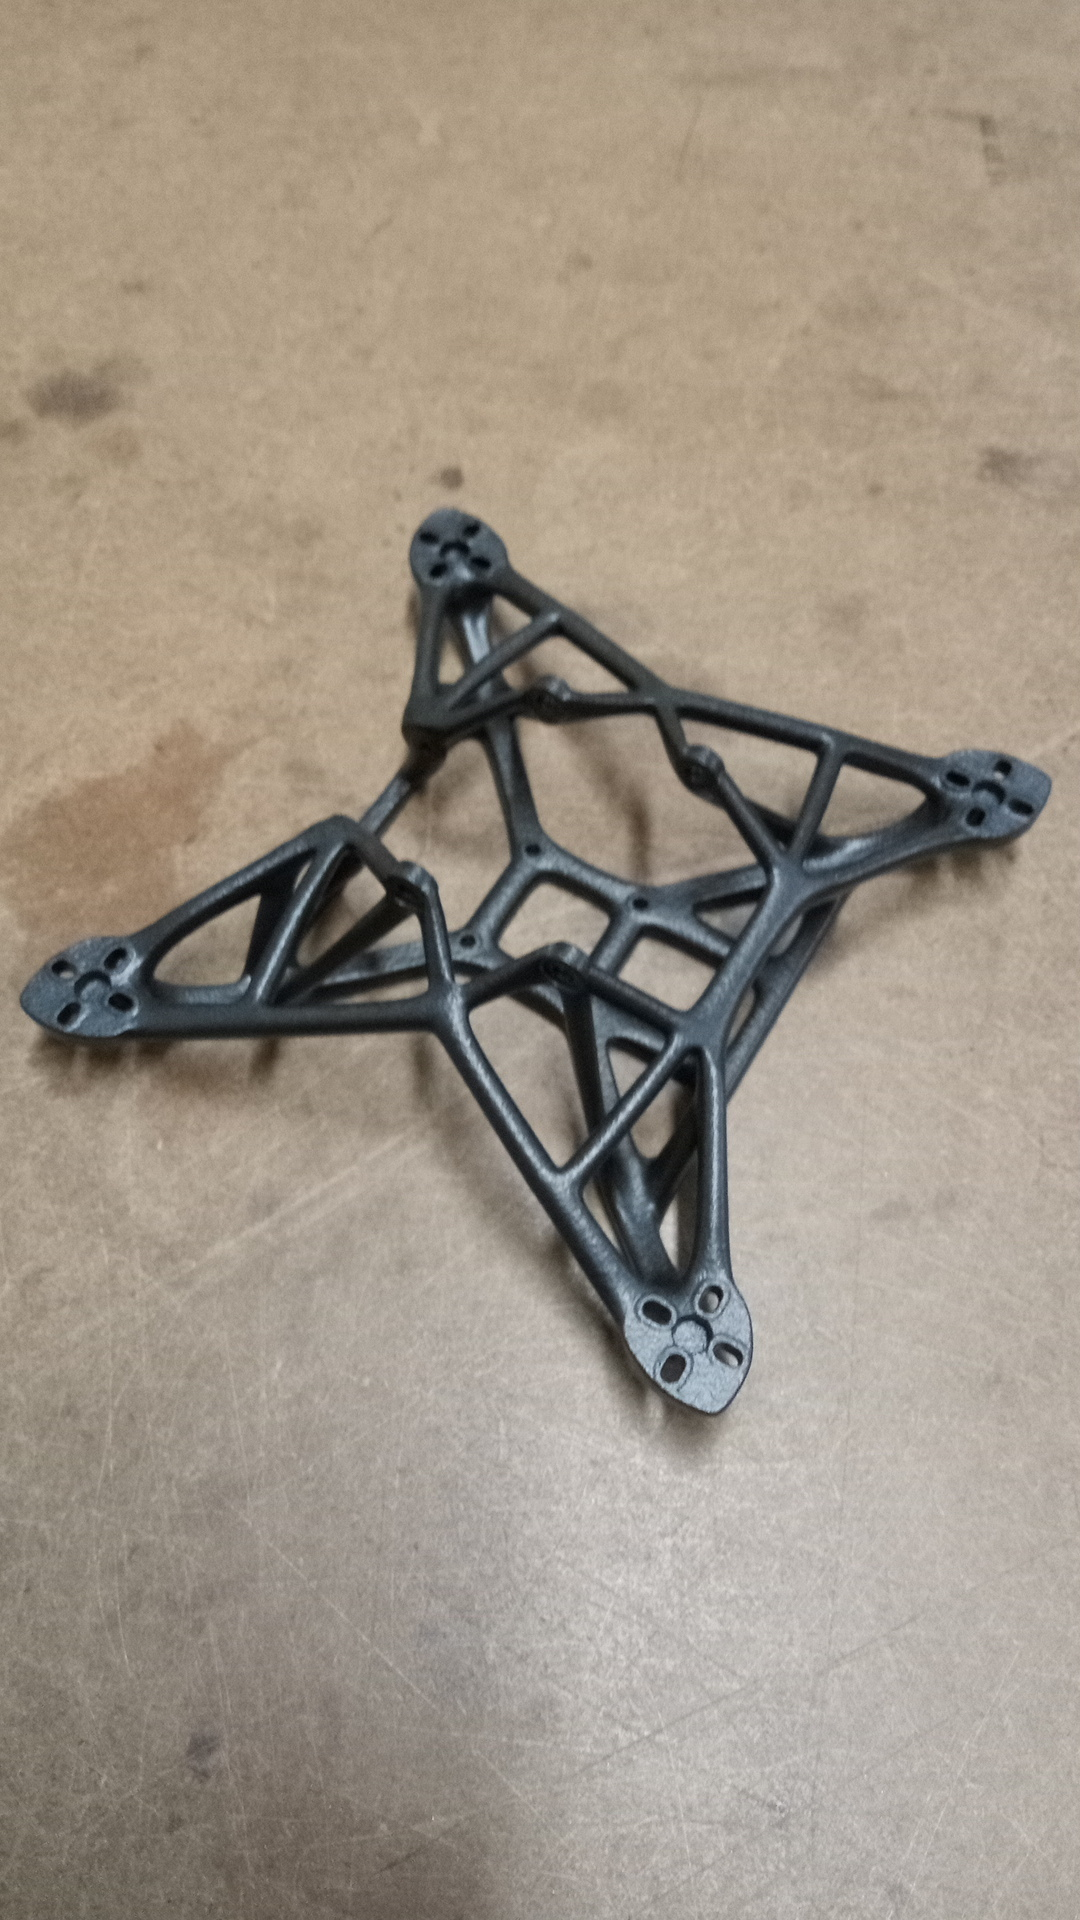 Download free STL file Bionic frame 140mm • 3D print template, BoristheSpider